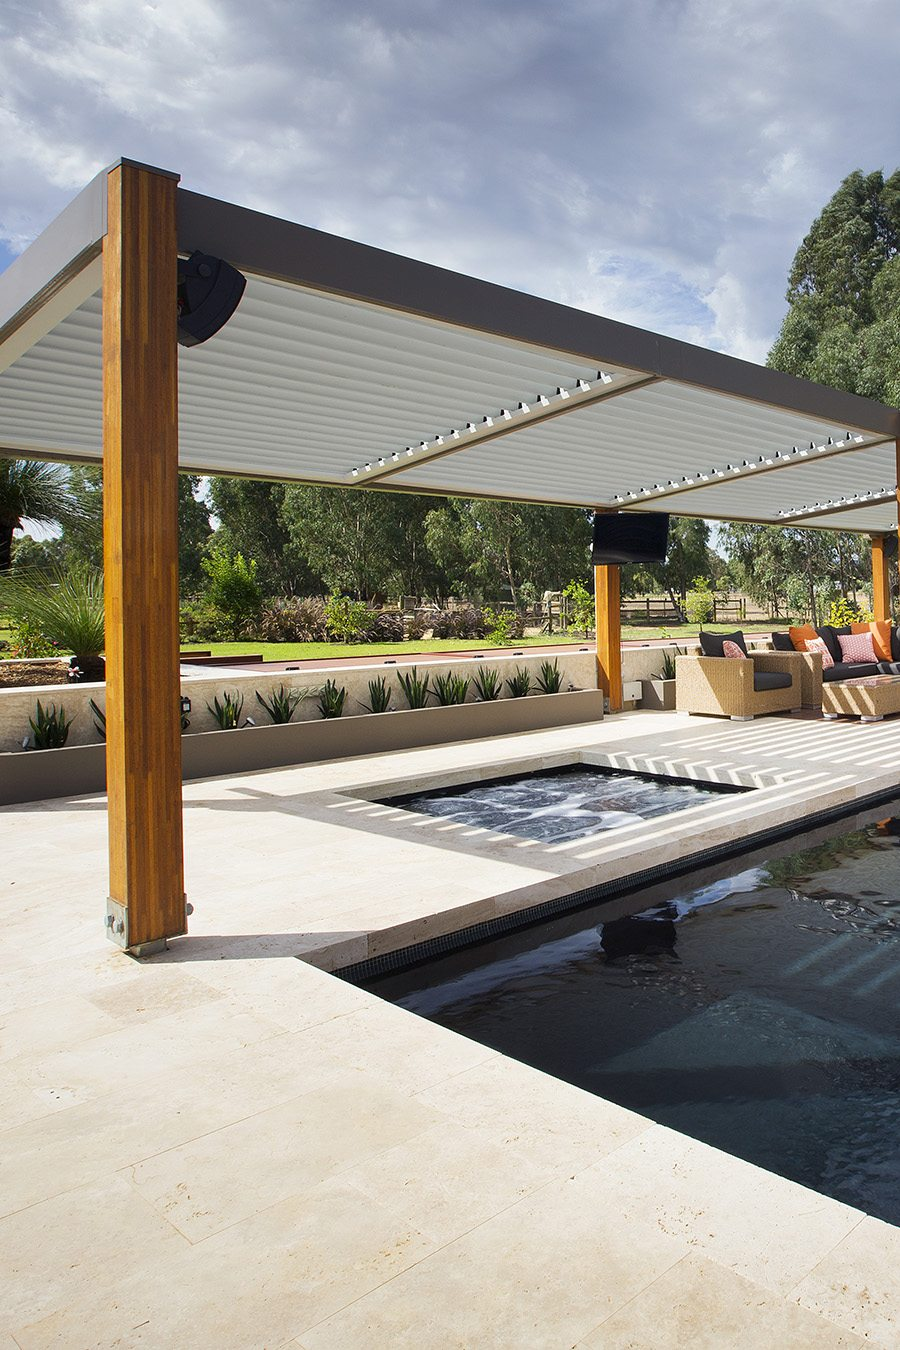 The Best Outdoor Flooring for Your Needs - If you have a pool, Australian Outdoor Living.